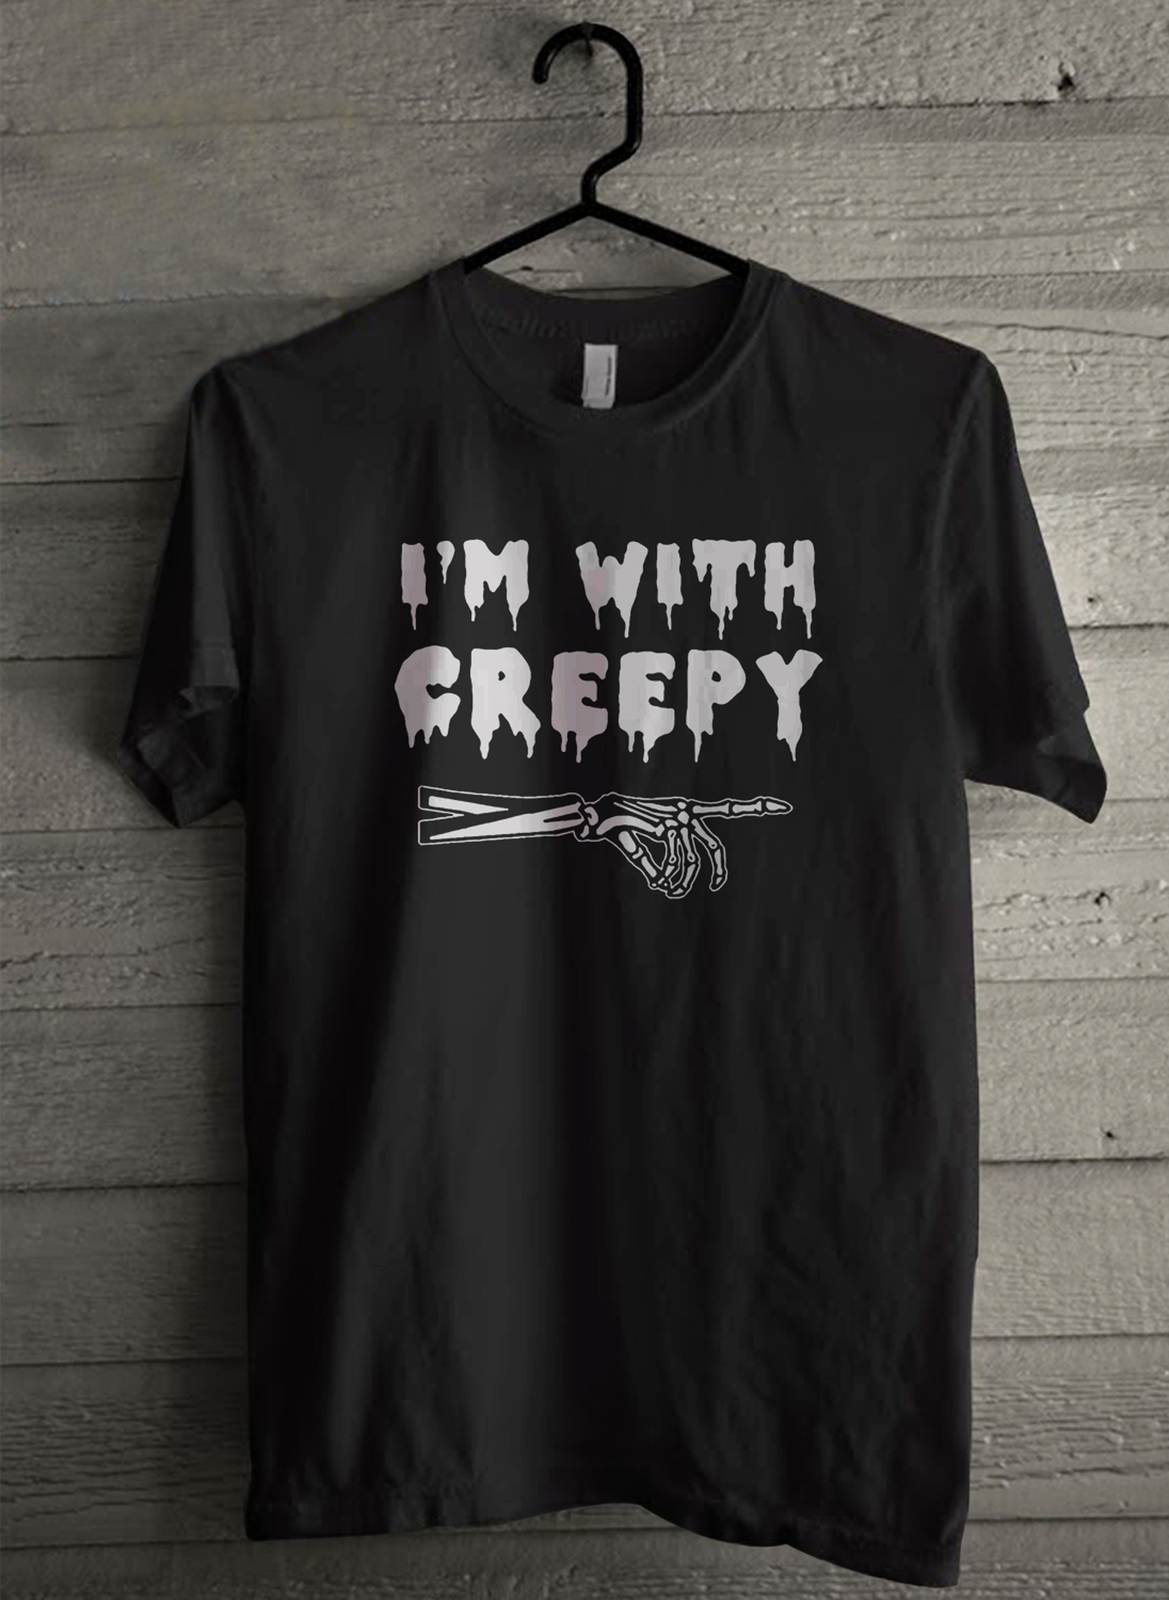 Primary image for I'm With Creepy  Halloween - Custom Men's T-Shirt (4732)